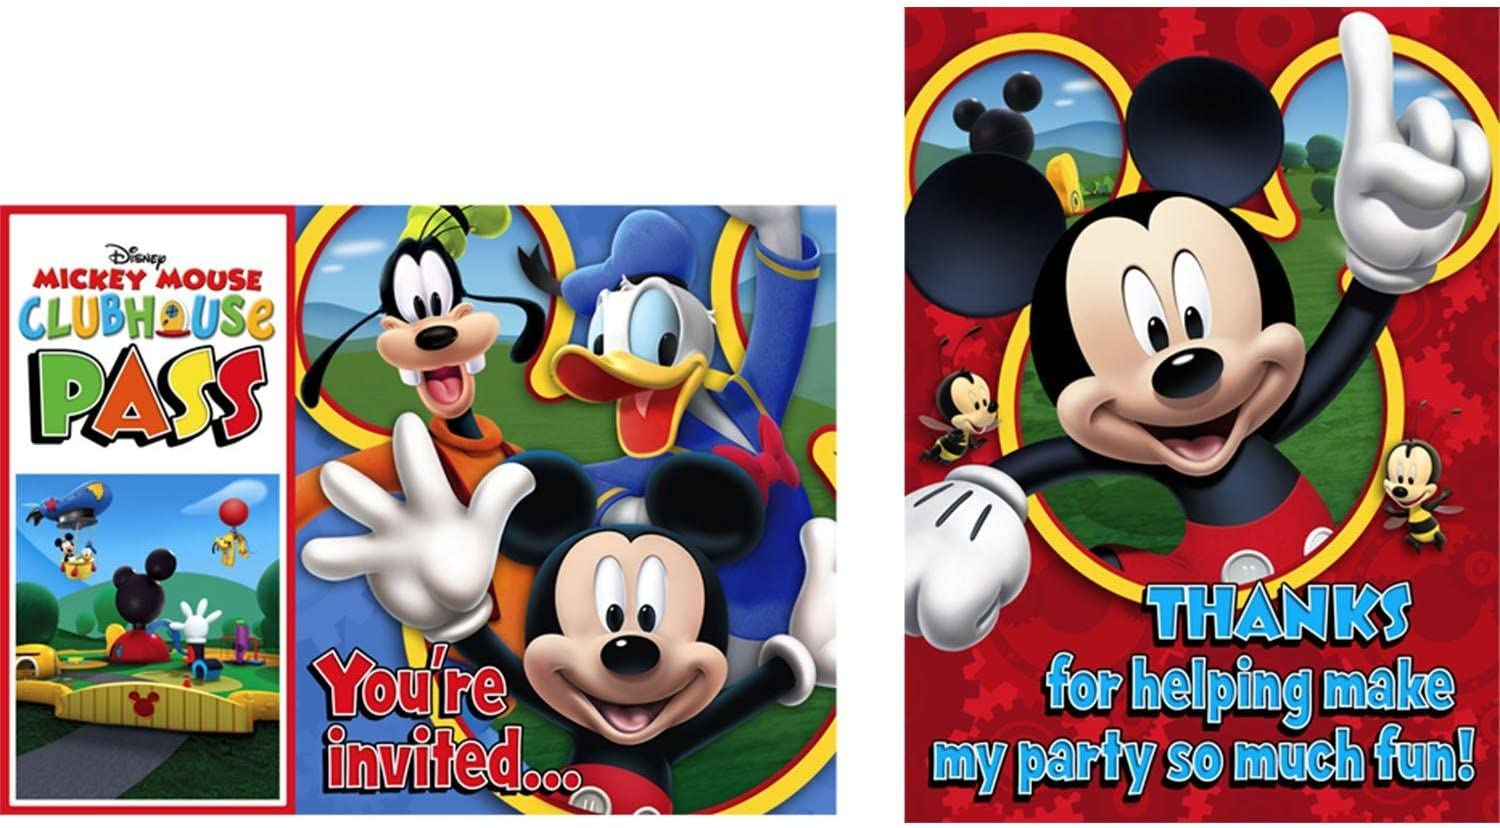 Party Invitations Disney Hallmark Mickey Mouse Clubhouse  8 Invites Per Pack